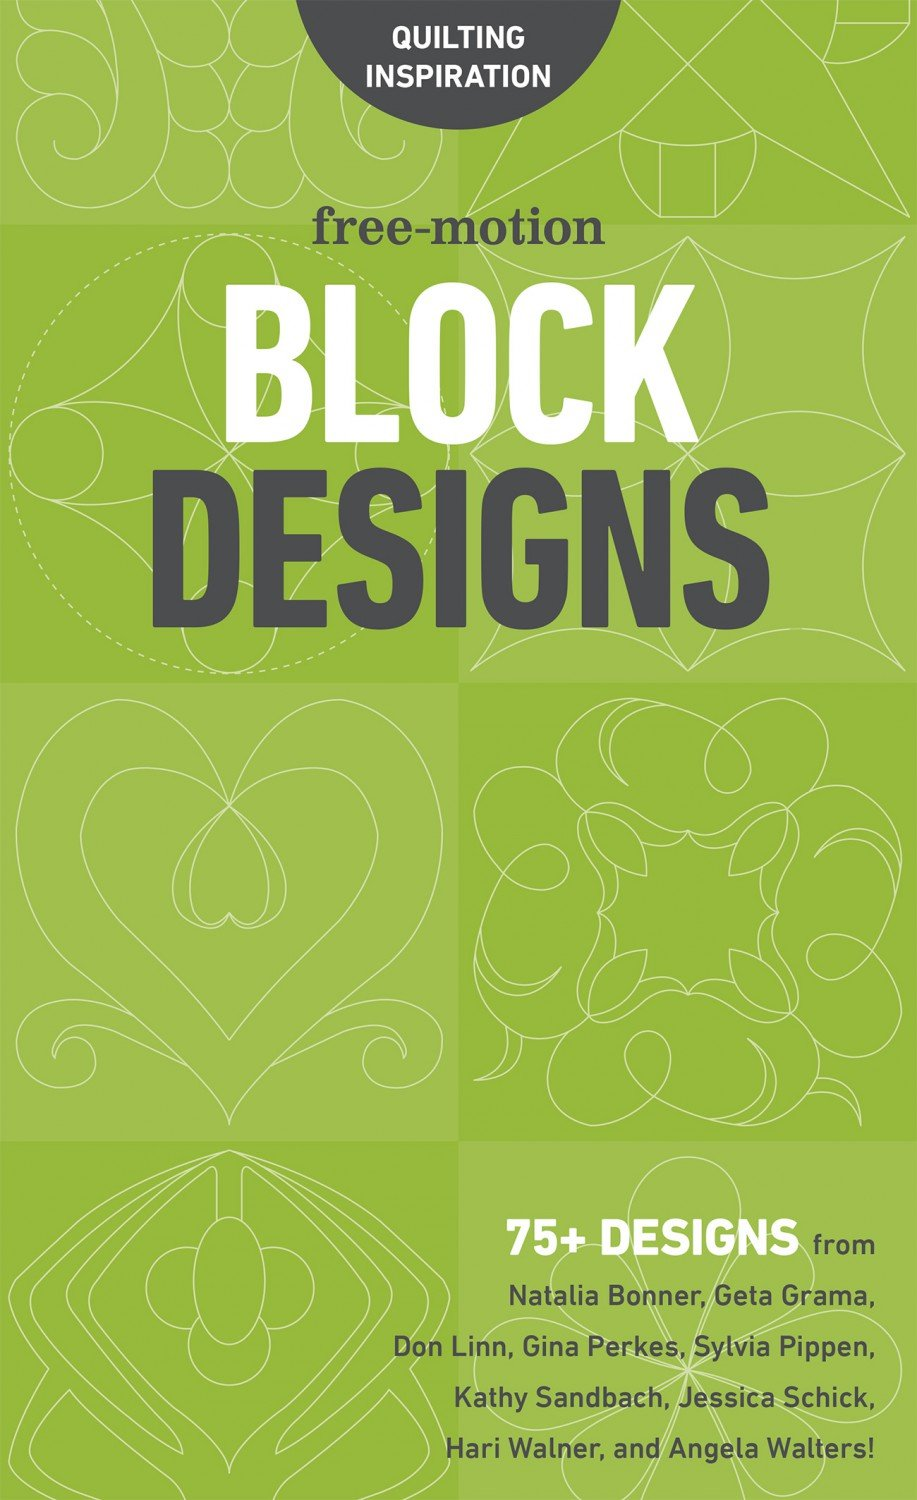 Free Motion Block Designs - Quilting Inspiration